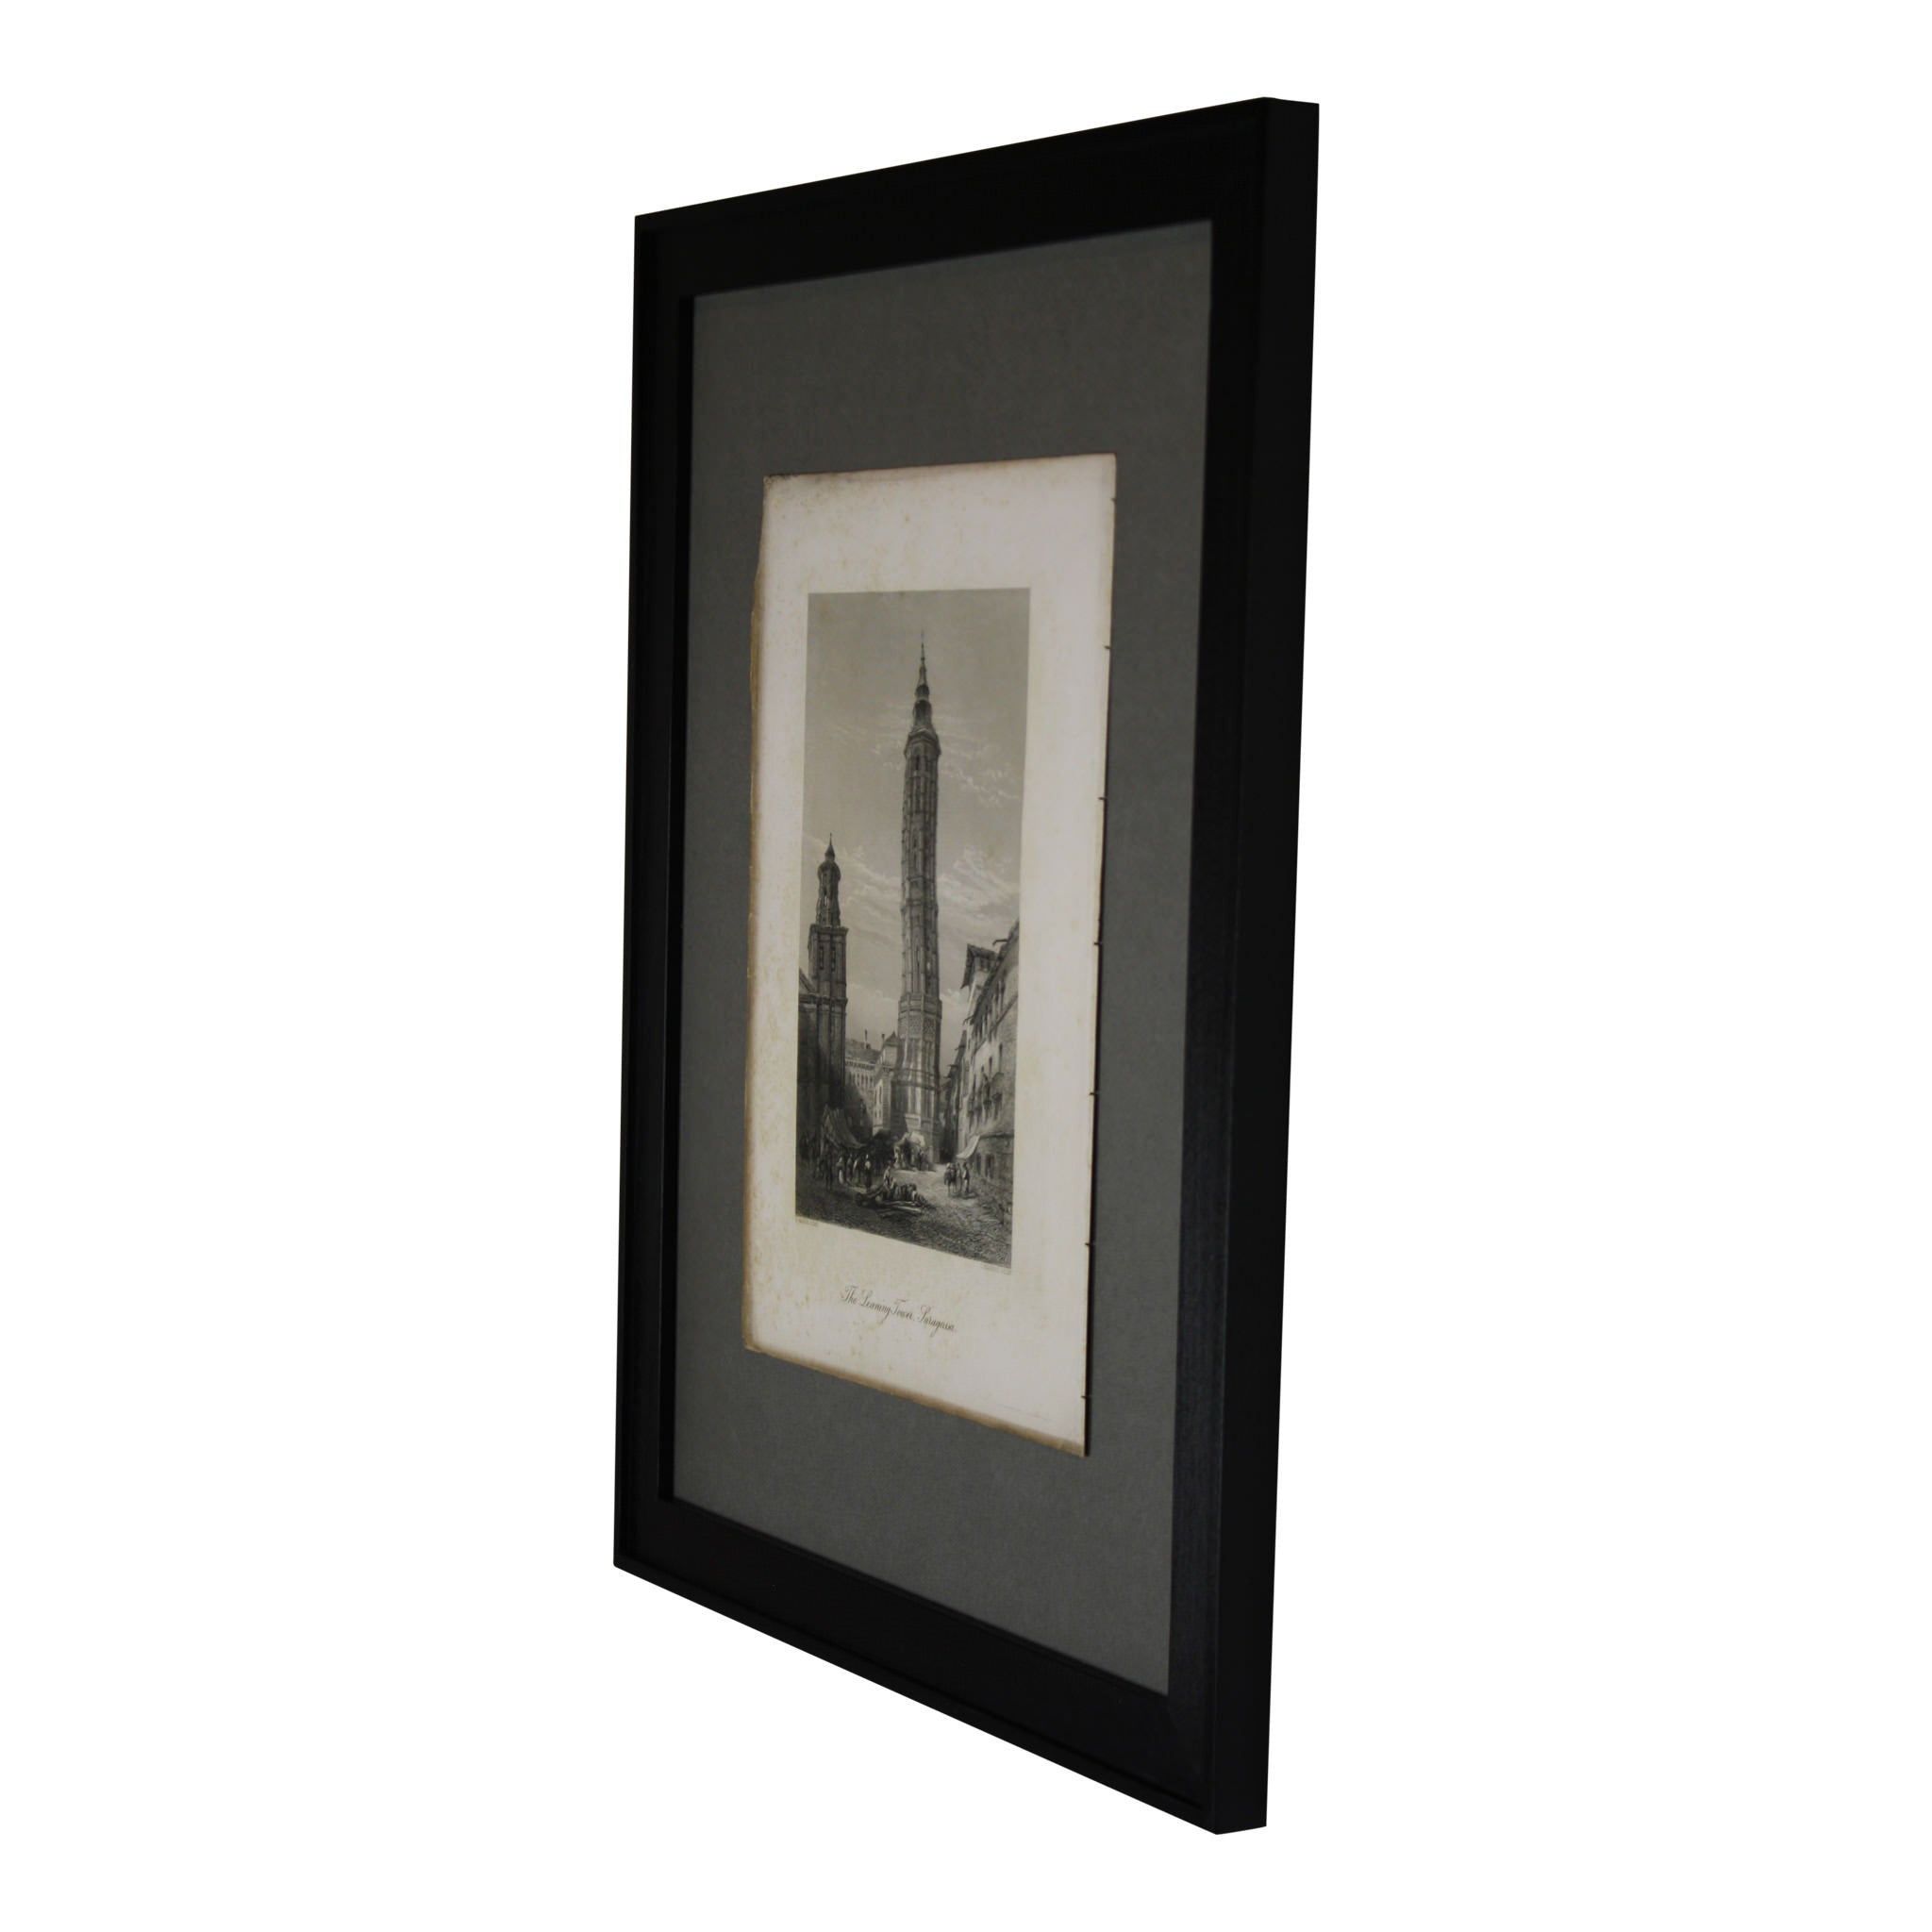 The Leaning Tower, Saragossa Framed Picture